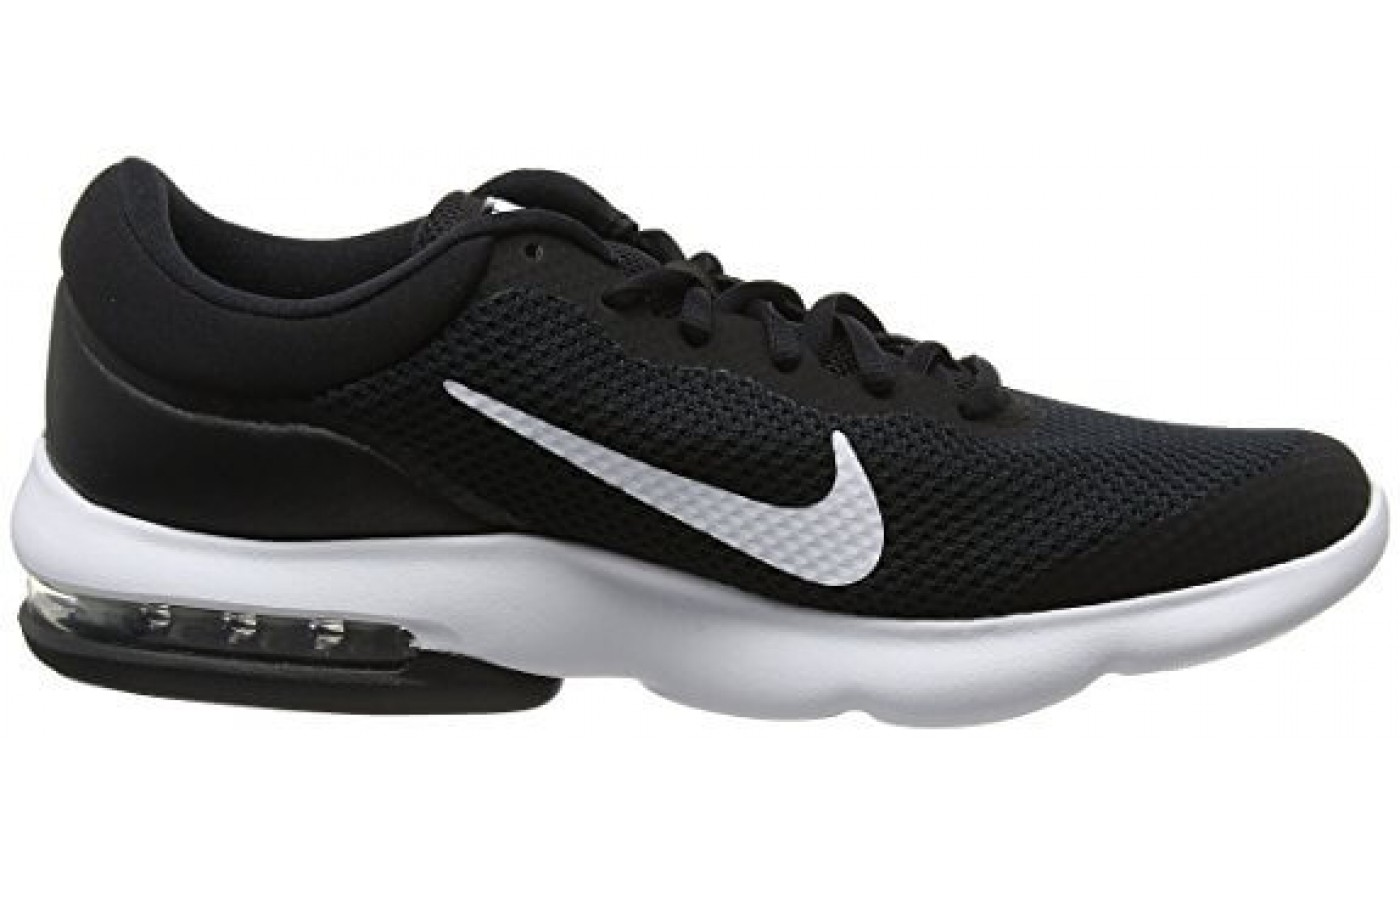 The Nike Air Max Advantage side view